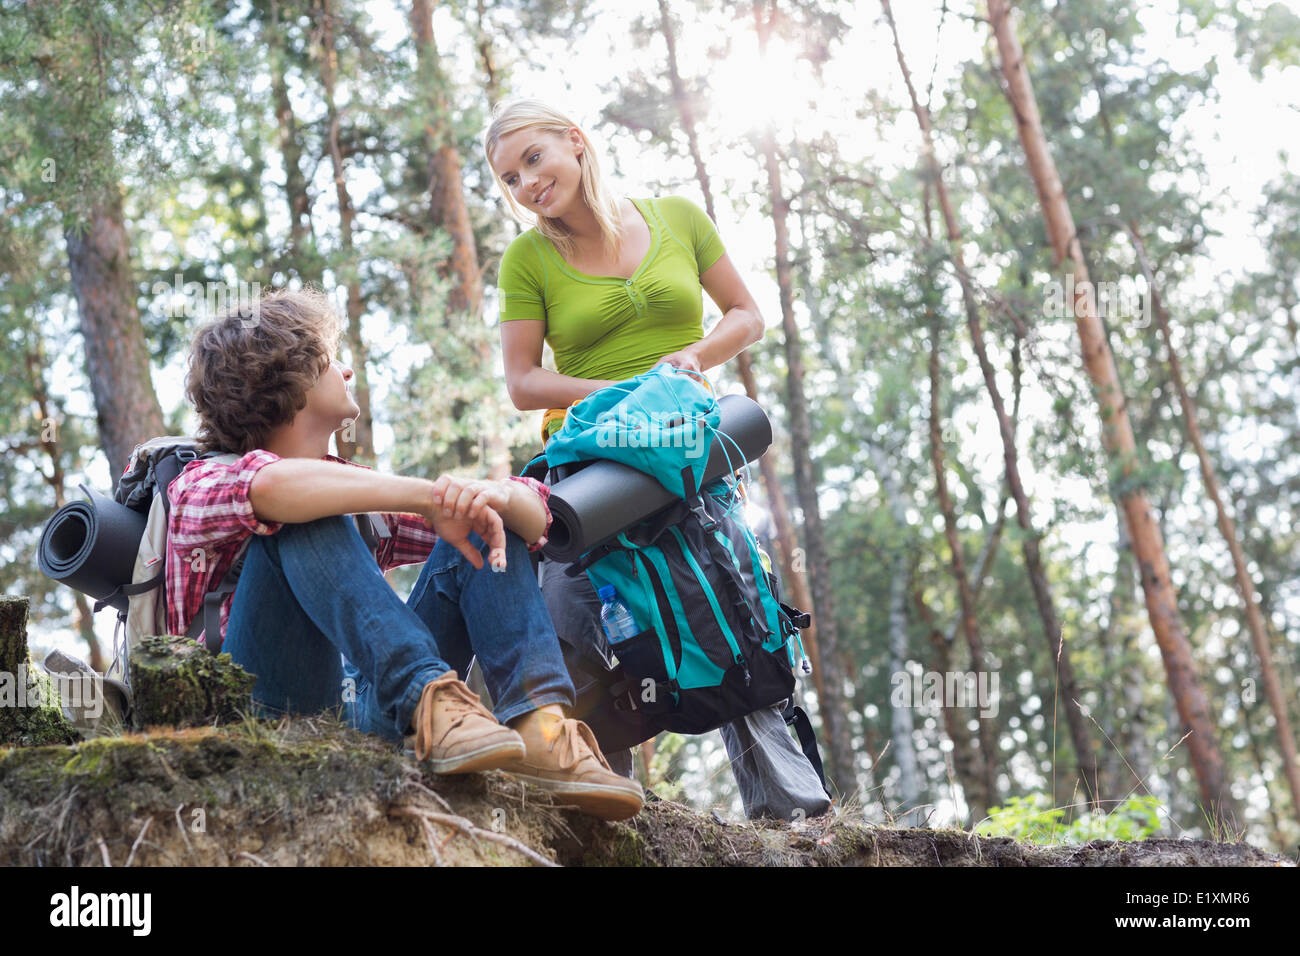 Young hiking couple looking at each other in forest - Stock Image